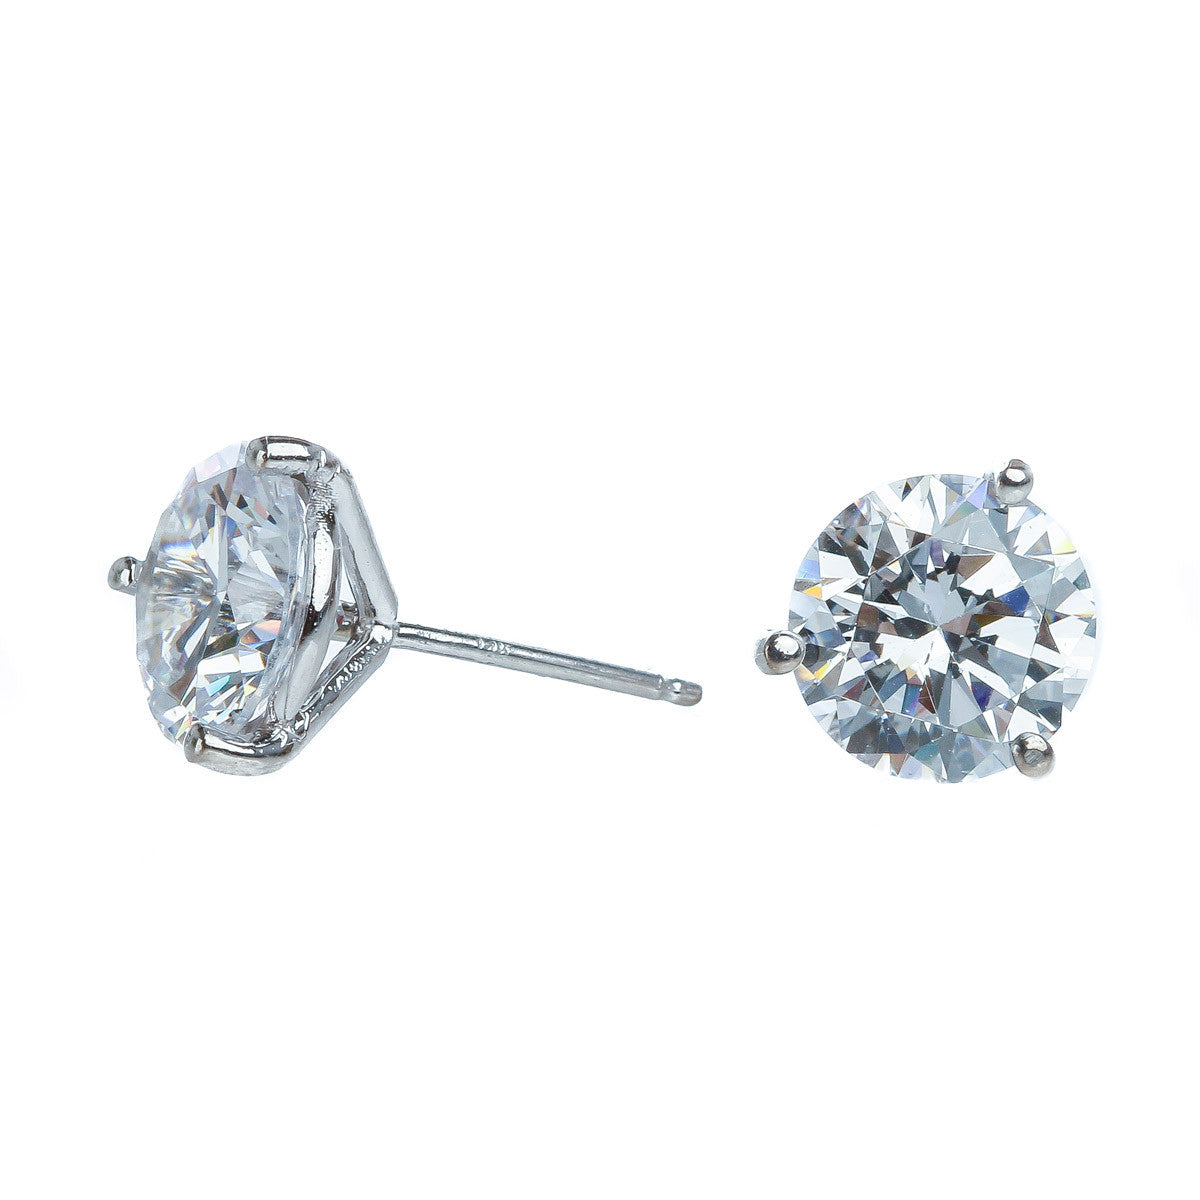 Martini Stud Earrings - 14K white gold - The Firestone Collection - Fashion Jewelry & Accessories